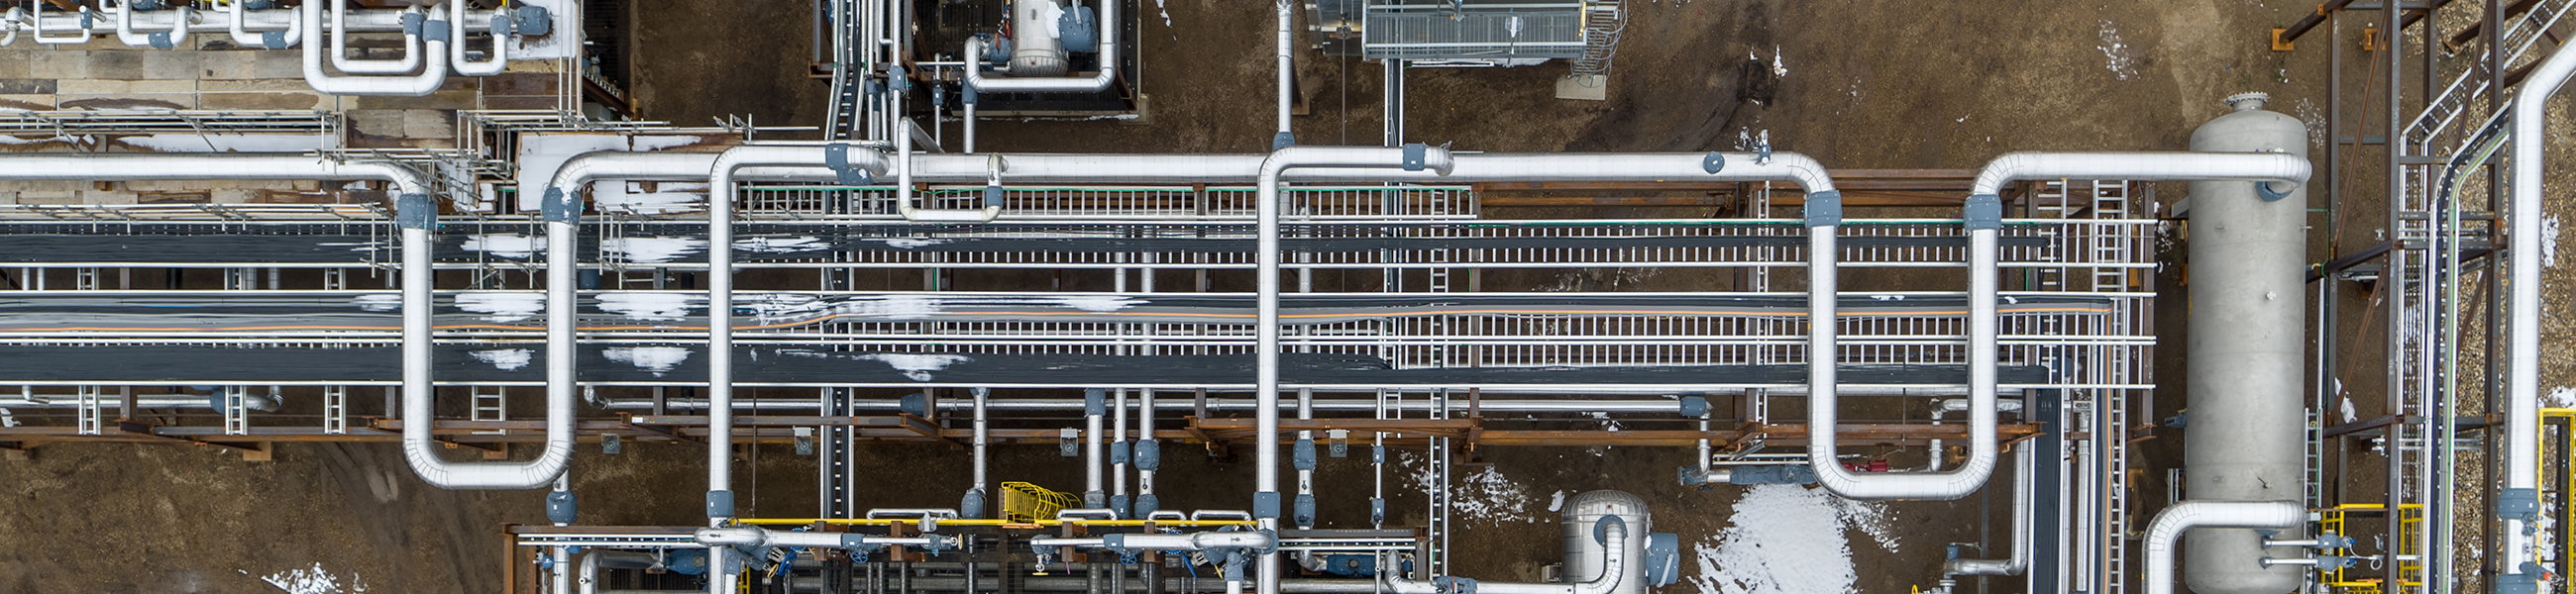 overhead shot of industrial piping